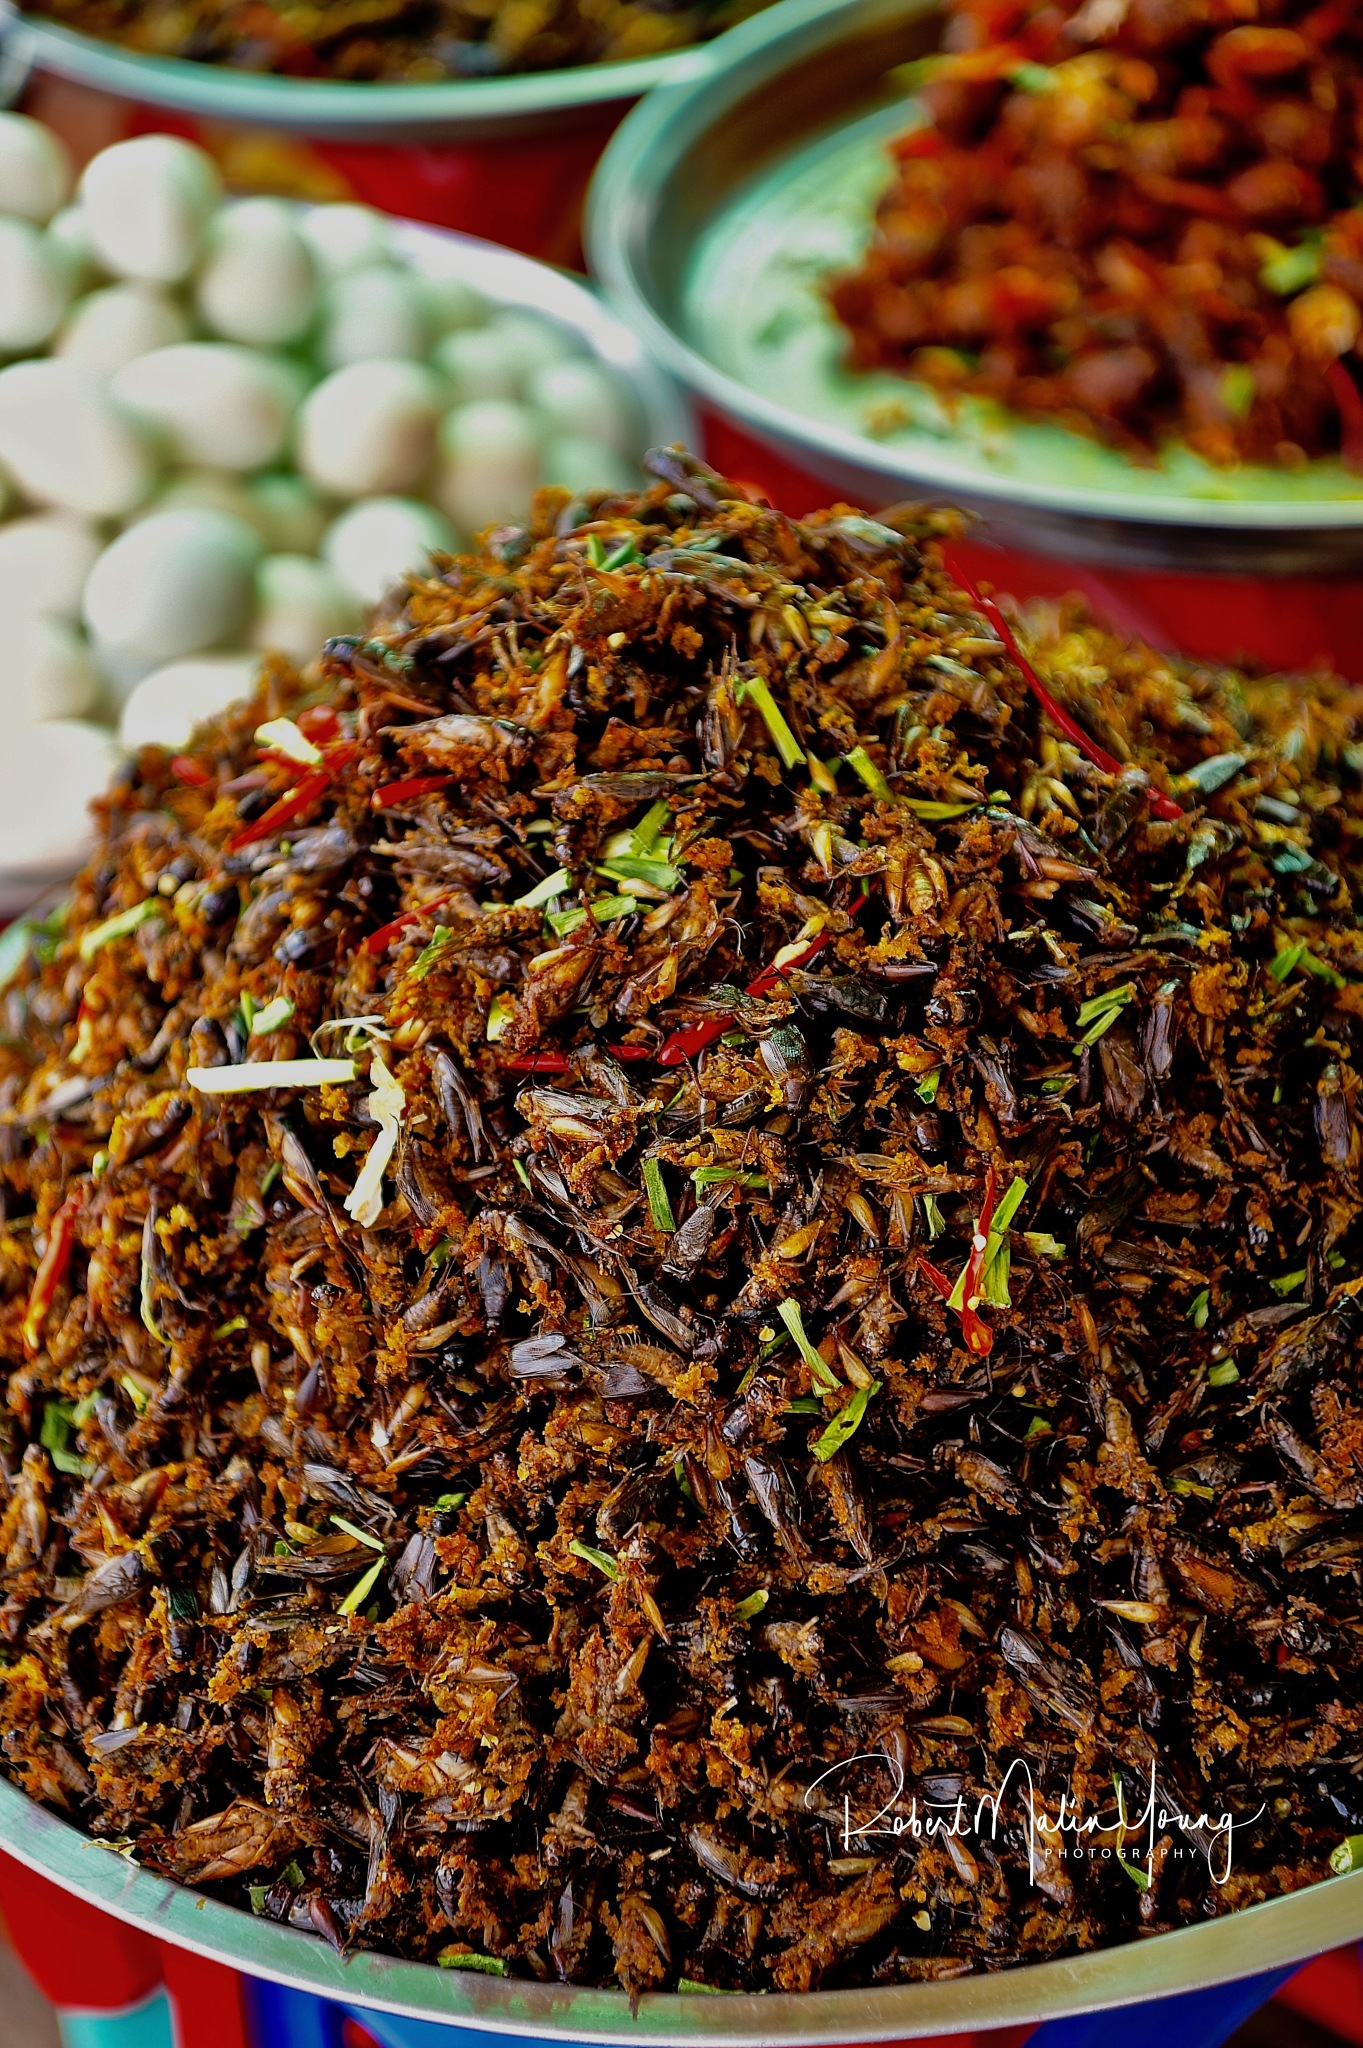 And as a rather crunchy appetizer - why not colorful mixed insects? - Laos 2018 by Robert Malin Young